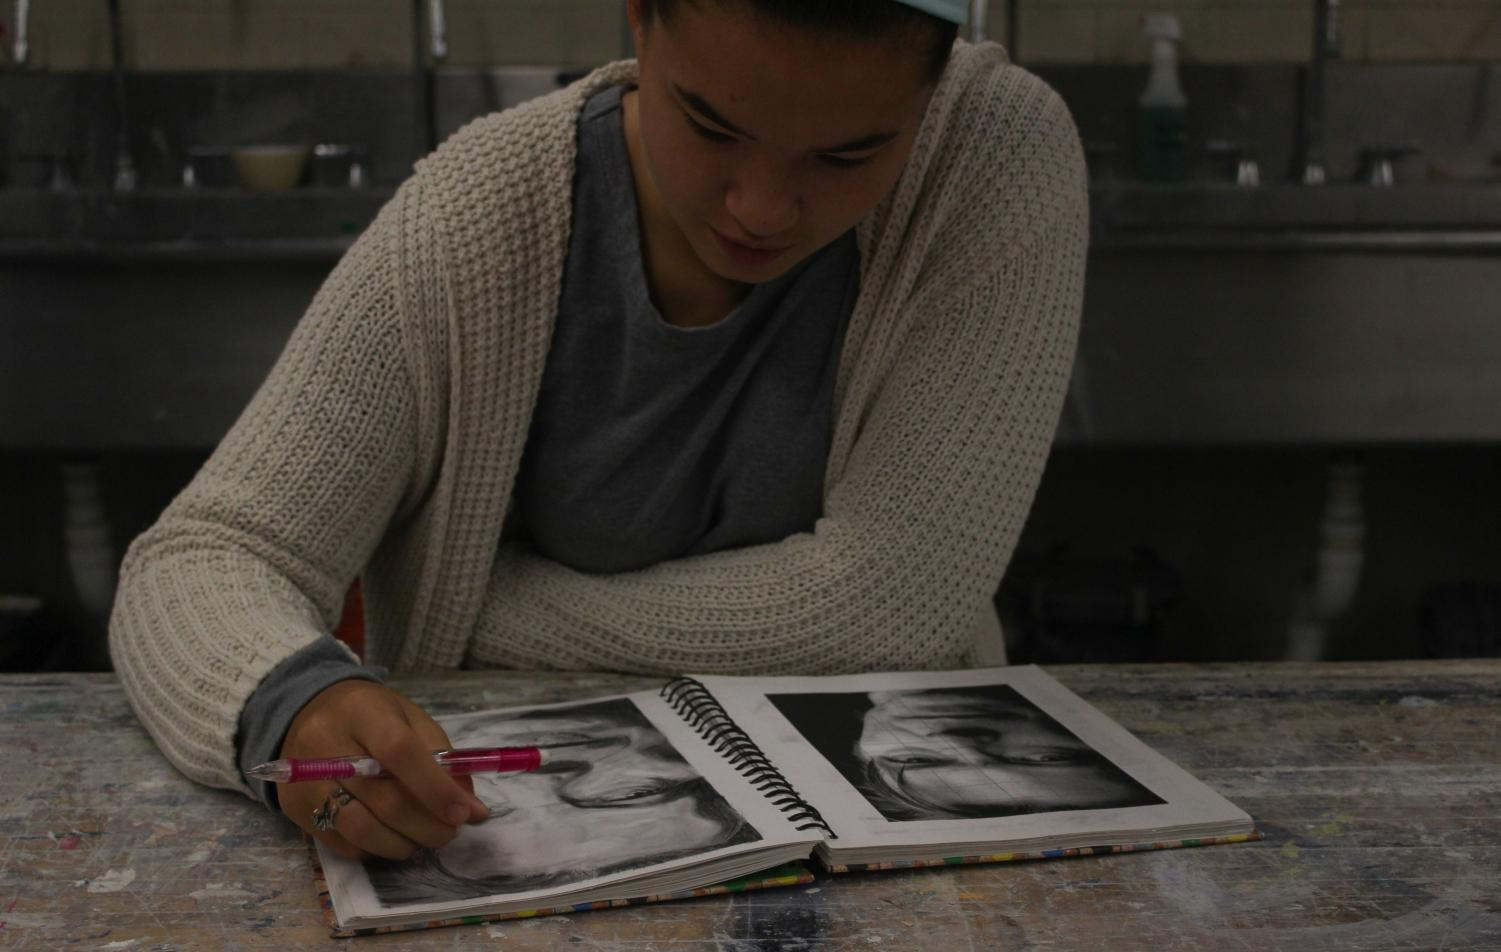 Stapel compares her portrait to a photograph of late artist David Bowie.